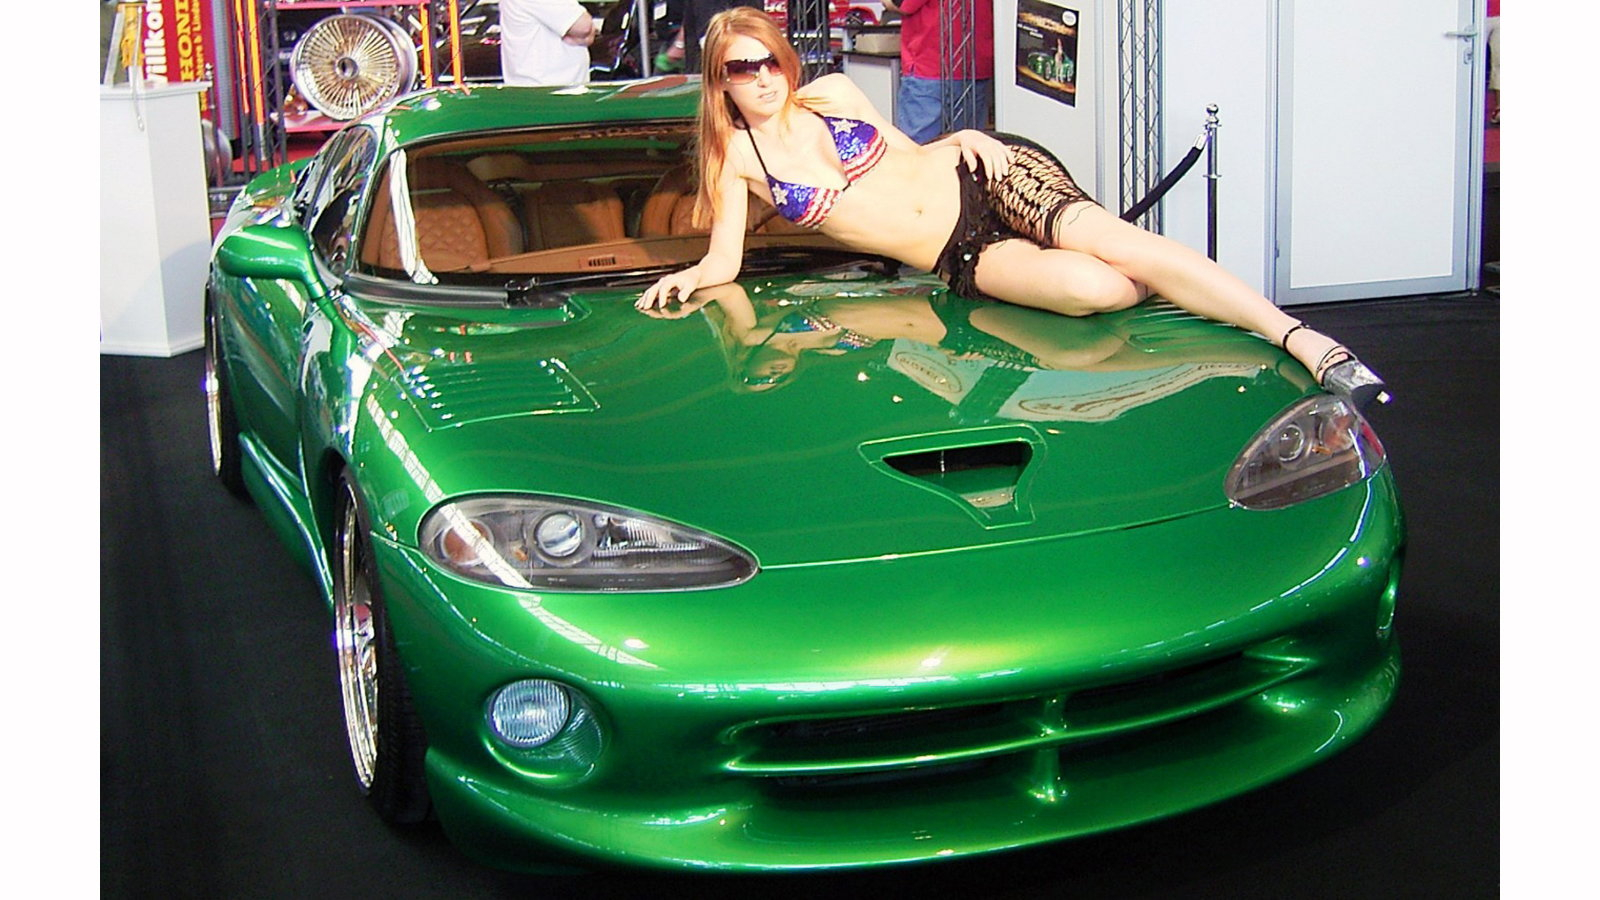 Viper GTS with an Irish Lass